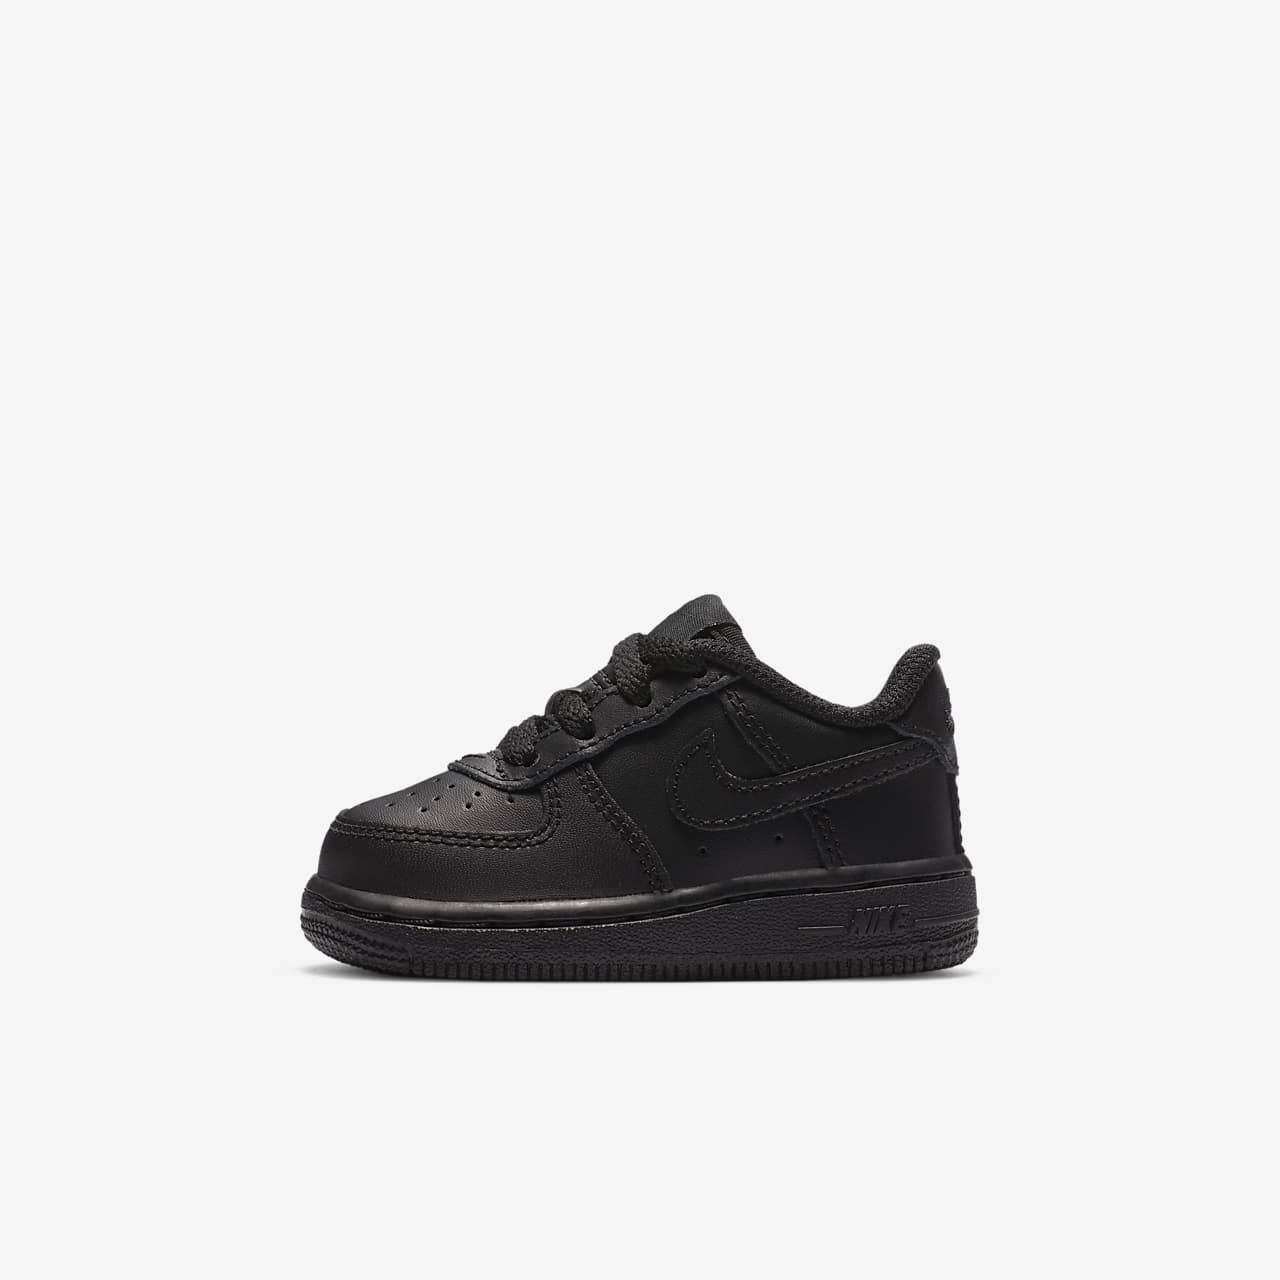 445d1ed04d Nike Air Force 1 06 Infant/Toddler Shoe. Nike.com